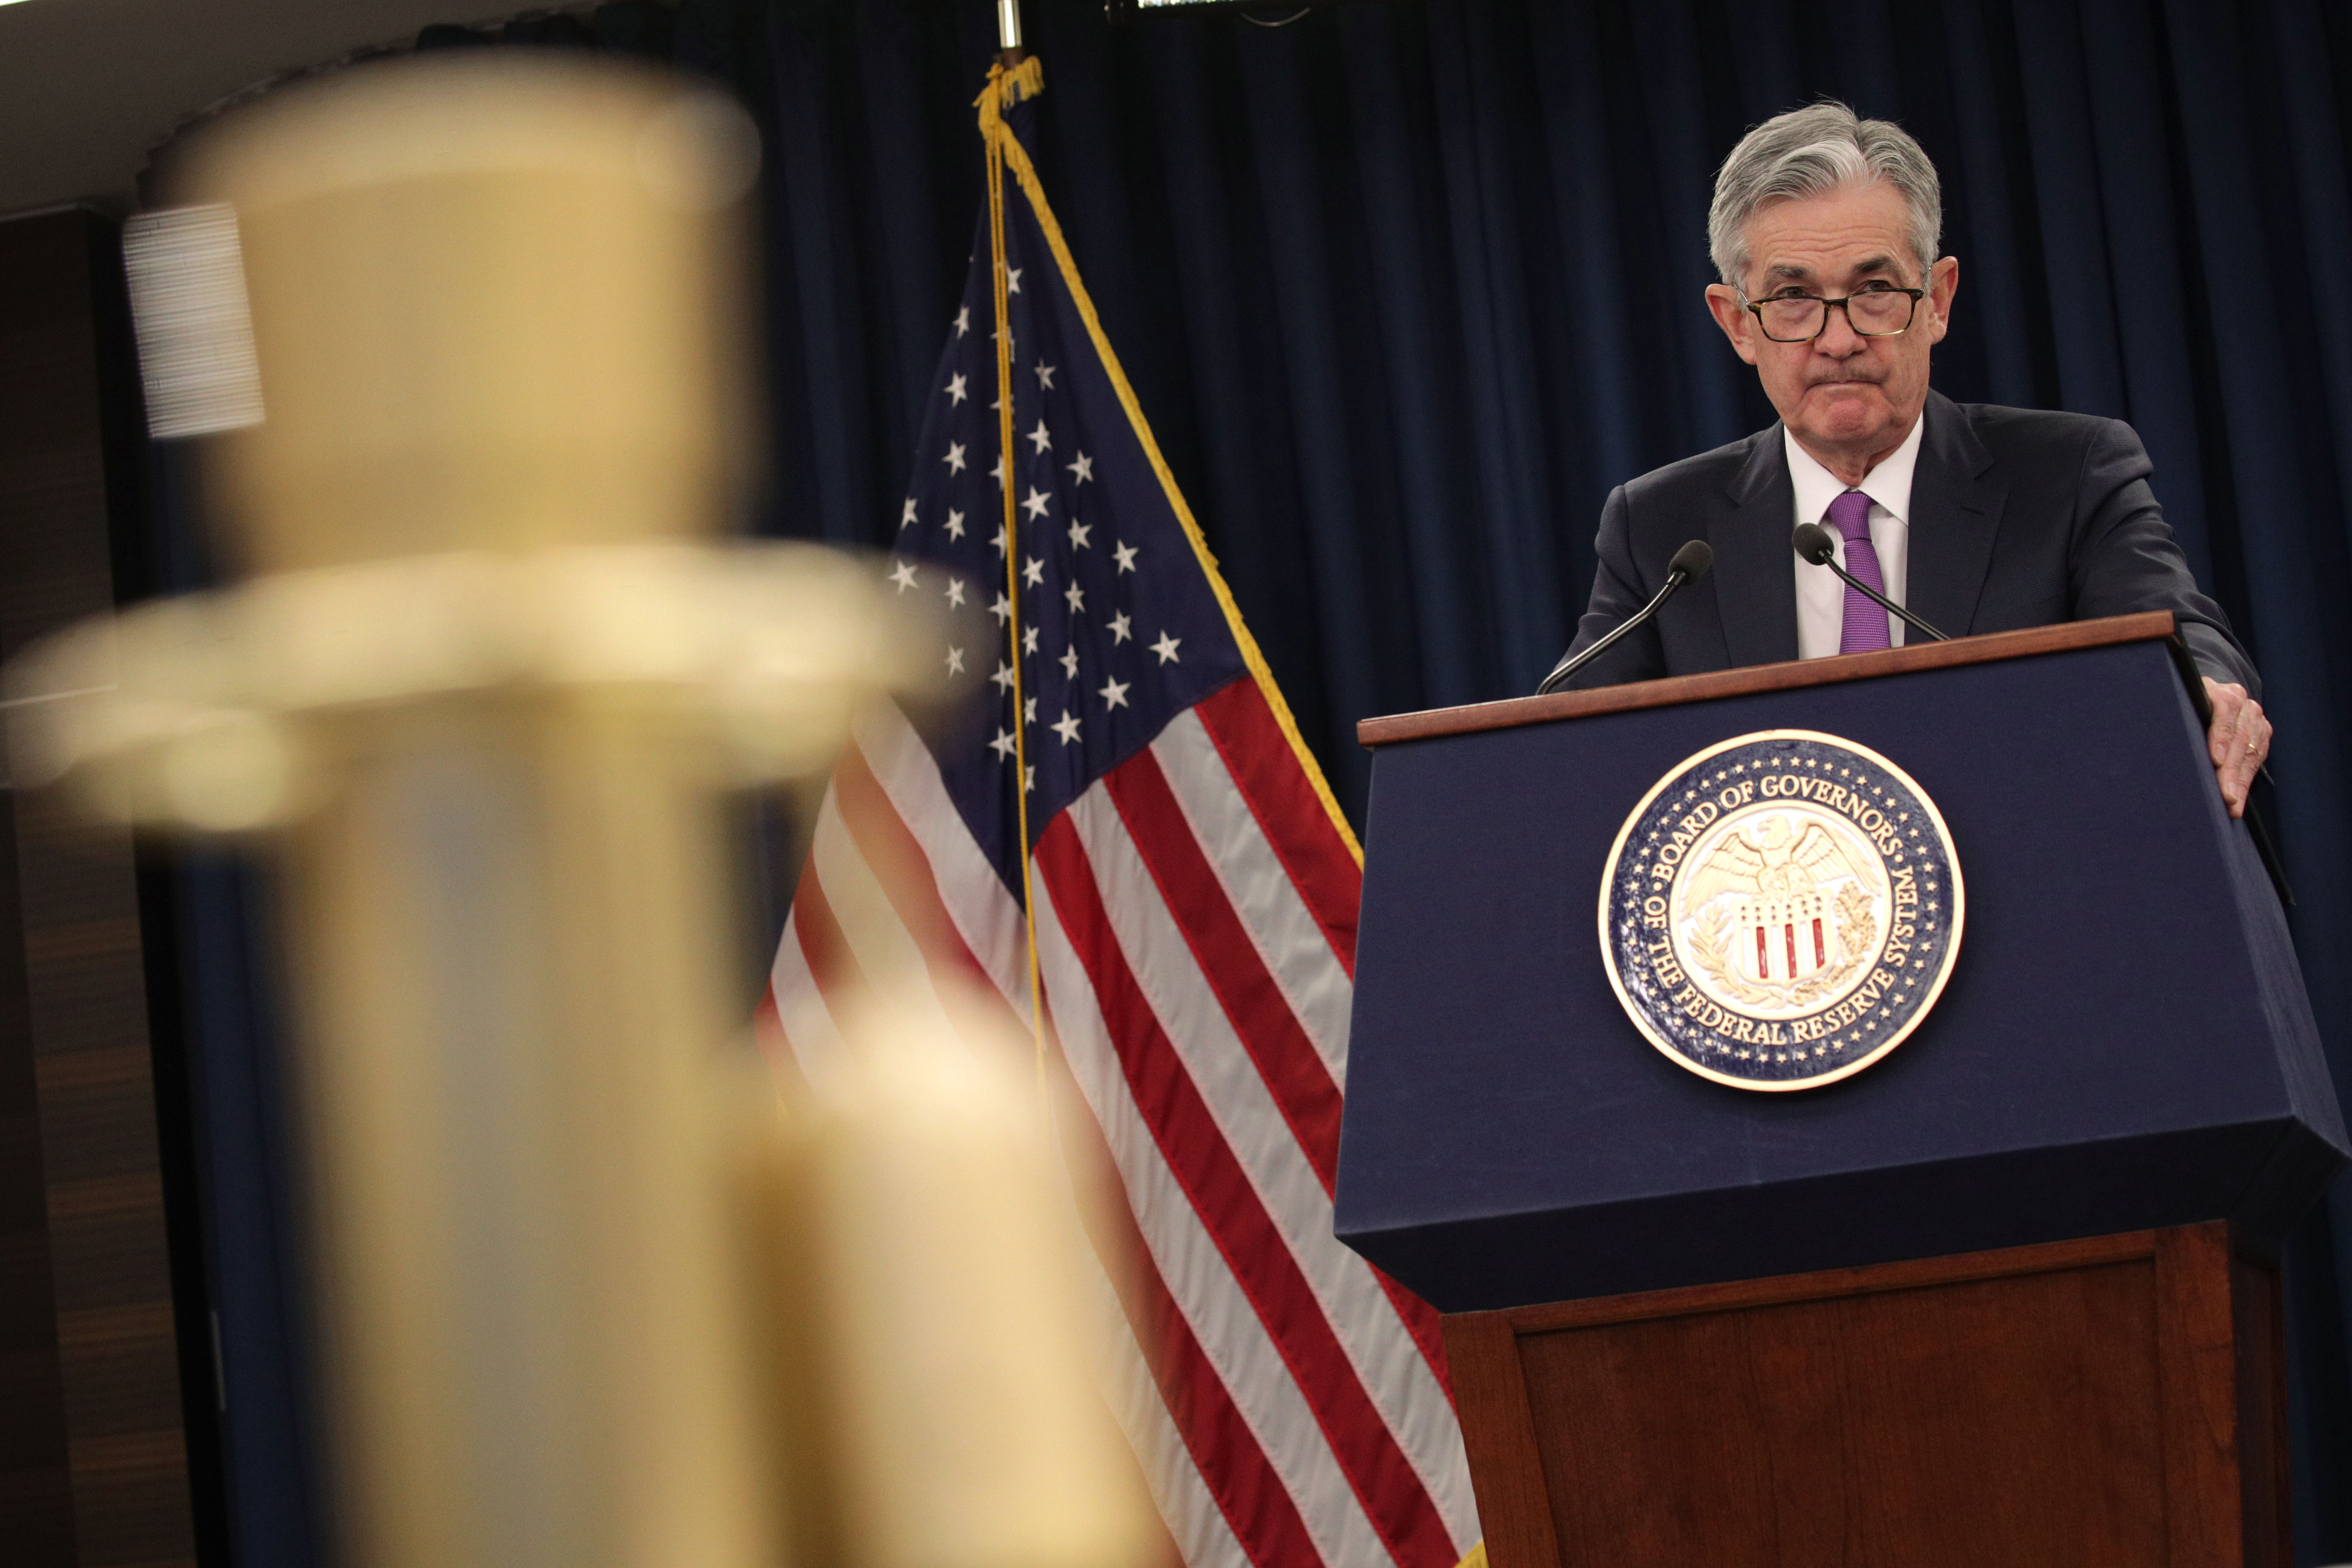 Jerome Powell speaking from behind a lectern.